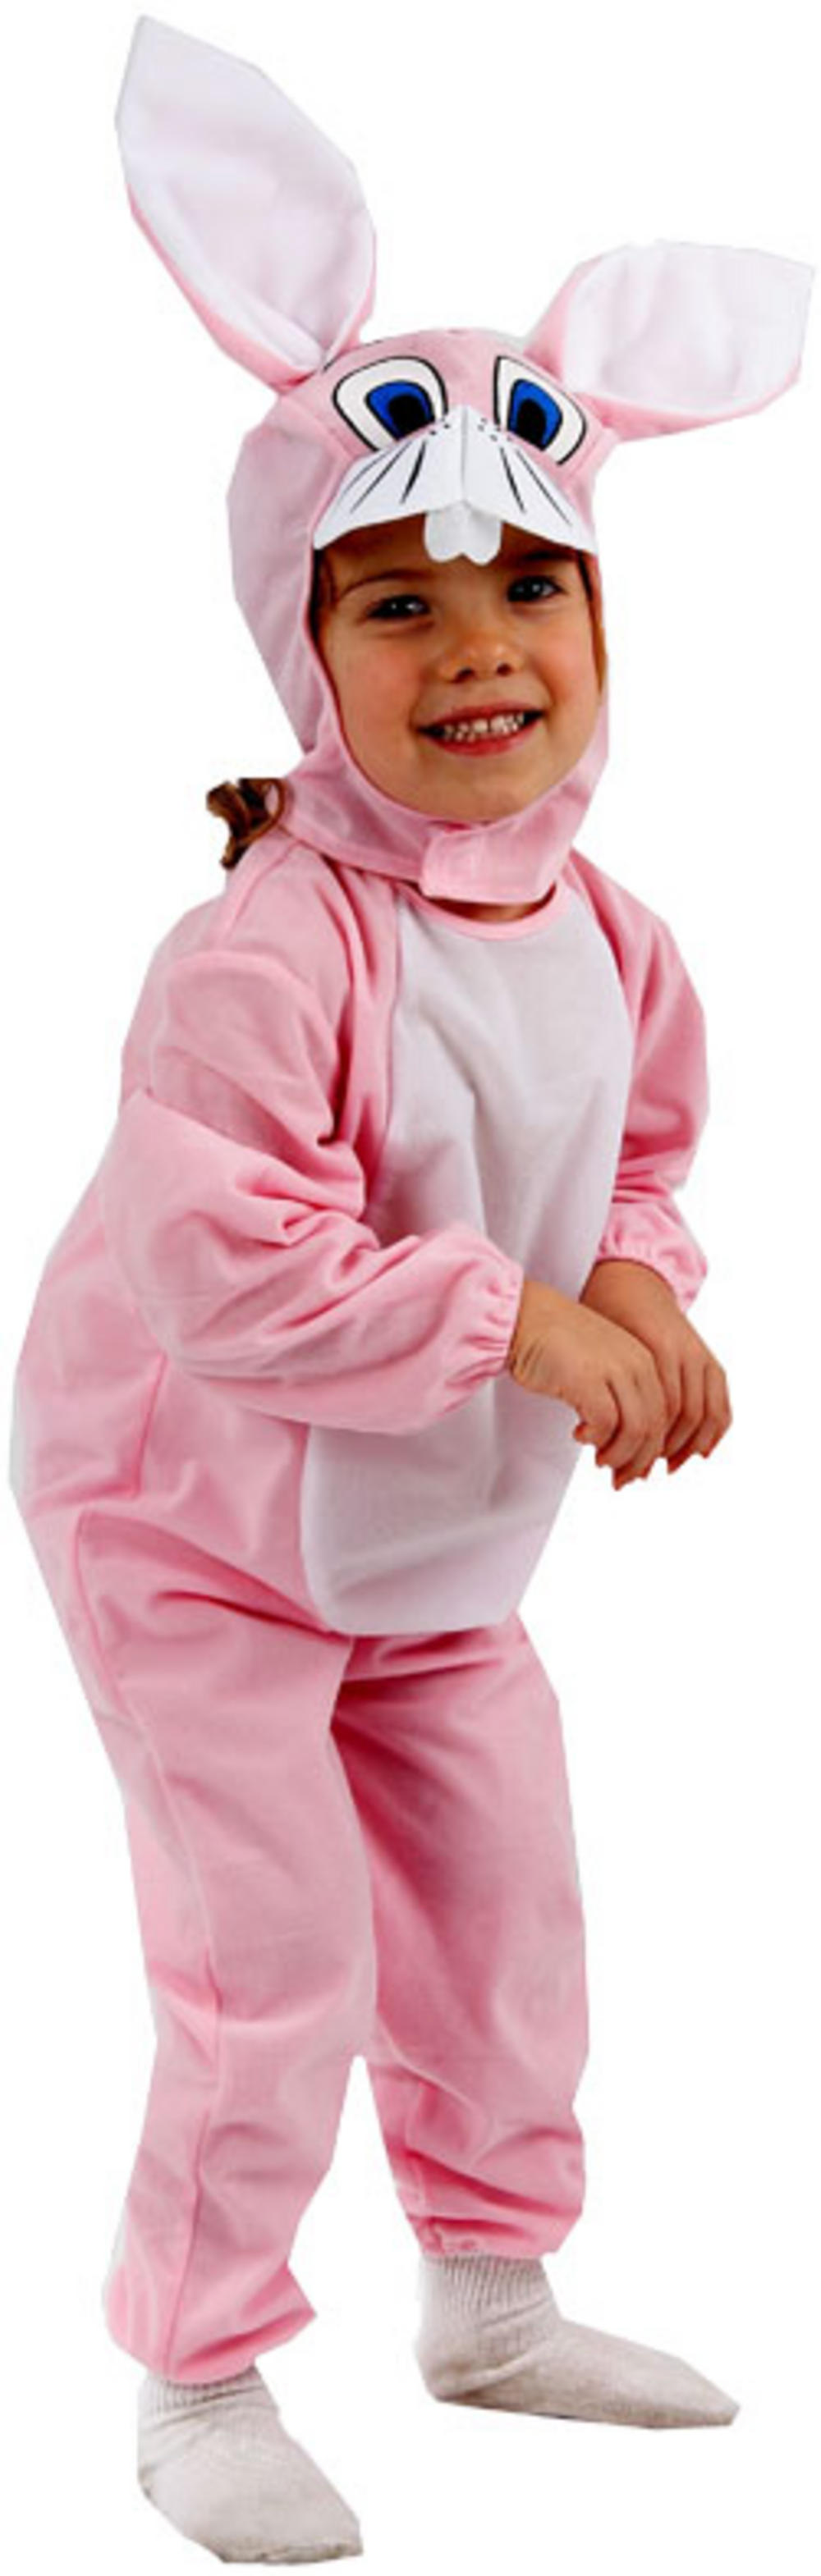 Kid's Toddlers Pink Bunny Rabbit Costume | Letter